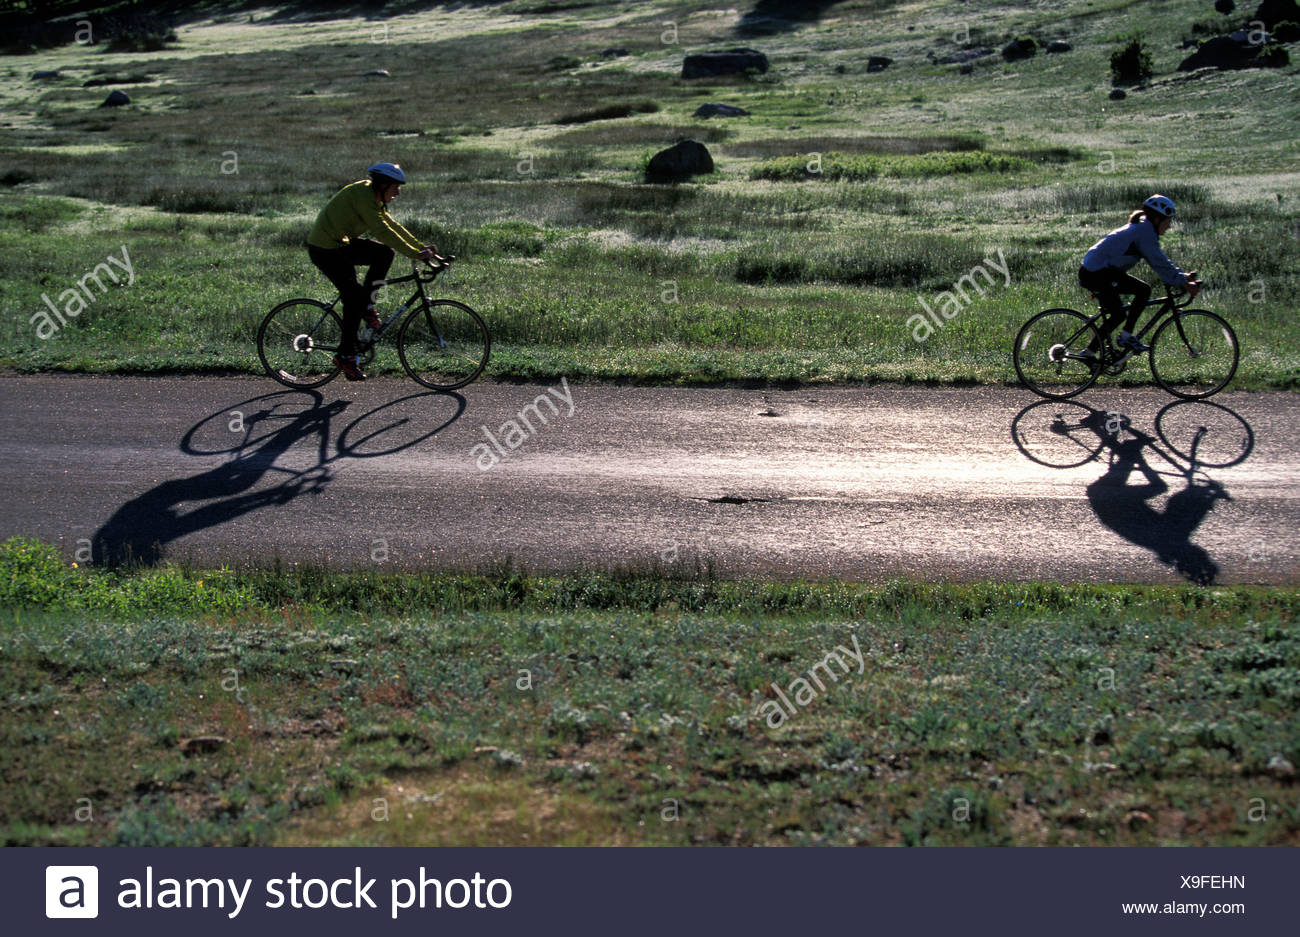 A man and a woman cycling on a country road. - Stock Image